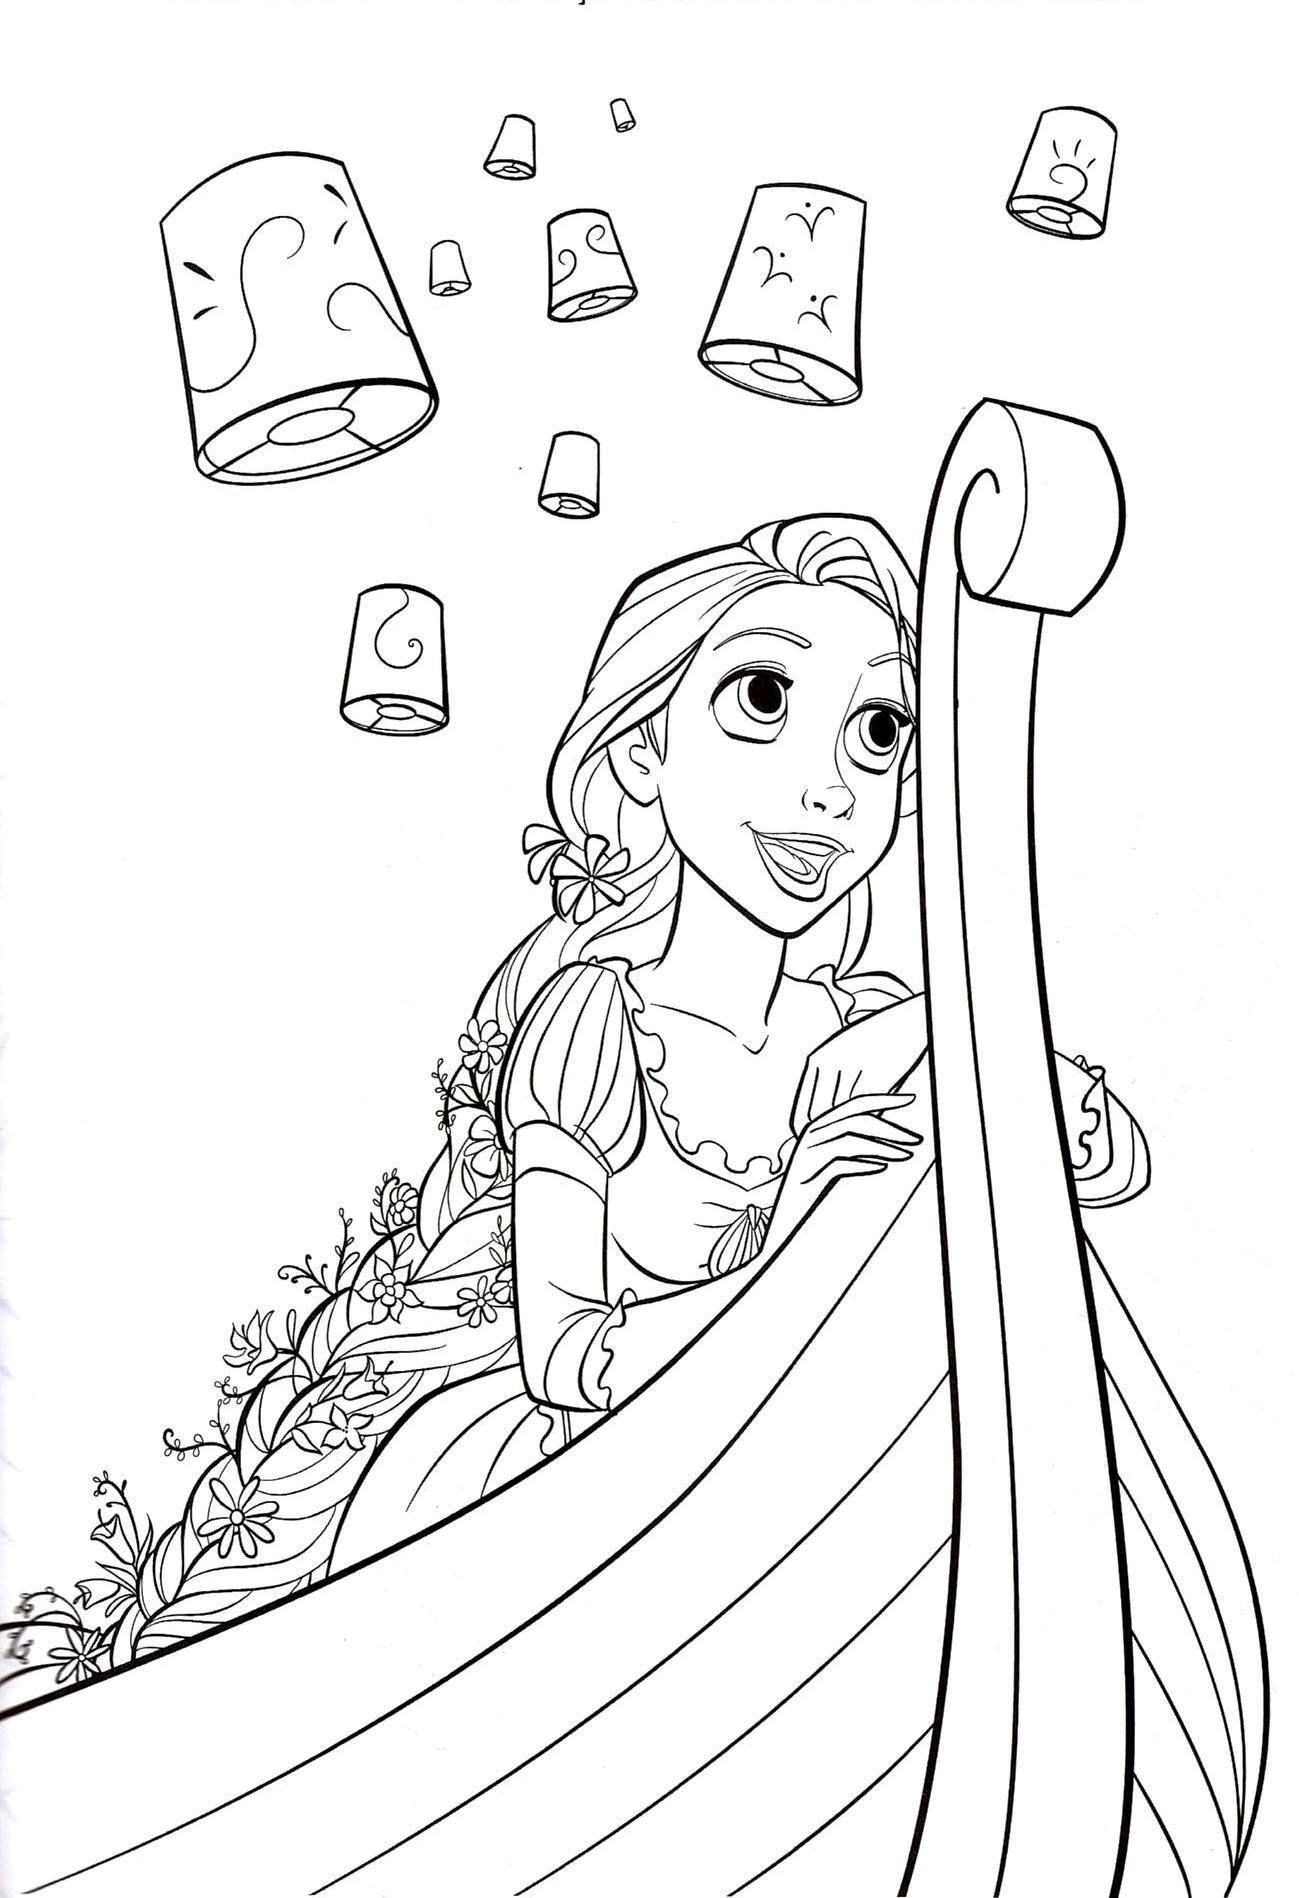 Disney Rapunzel Coloring Pages Free Printable Disney Princess Tangled Rapunzel Colouring Tangled Coloring Pages Princess Coloring Pages Rapunzel Coloring Pages